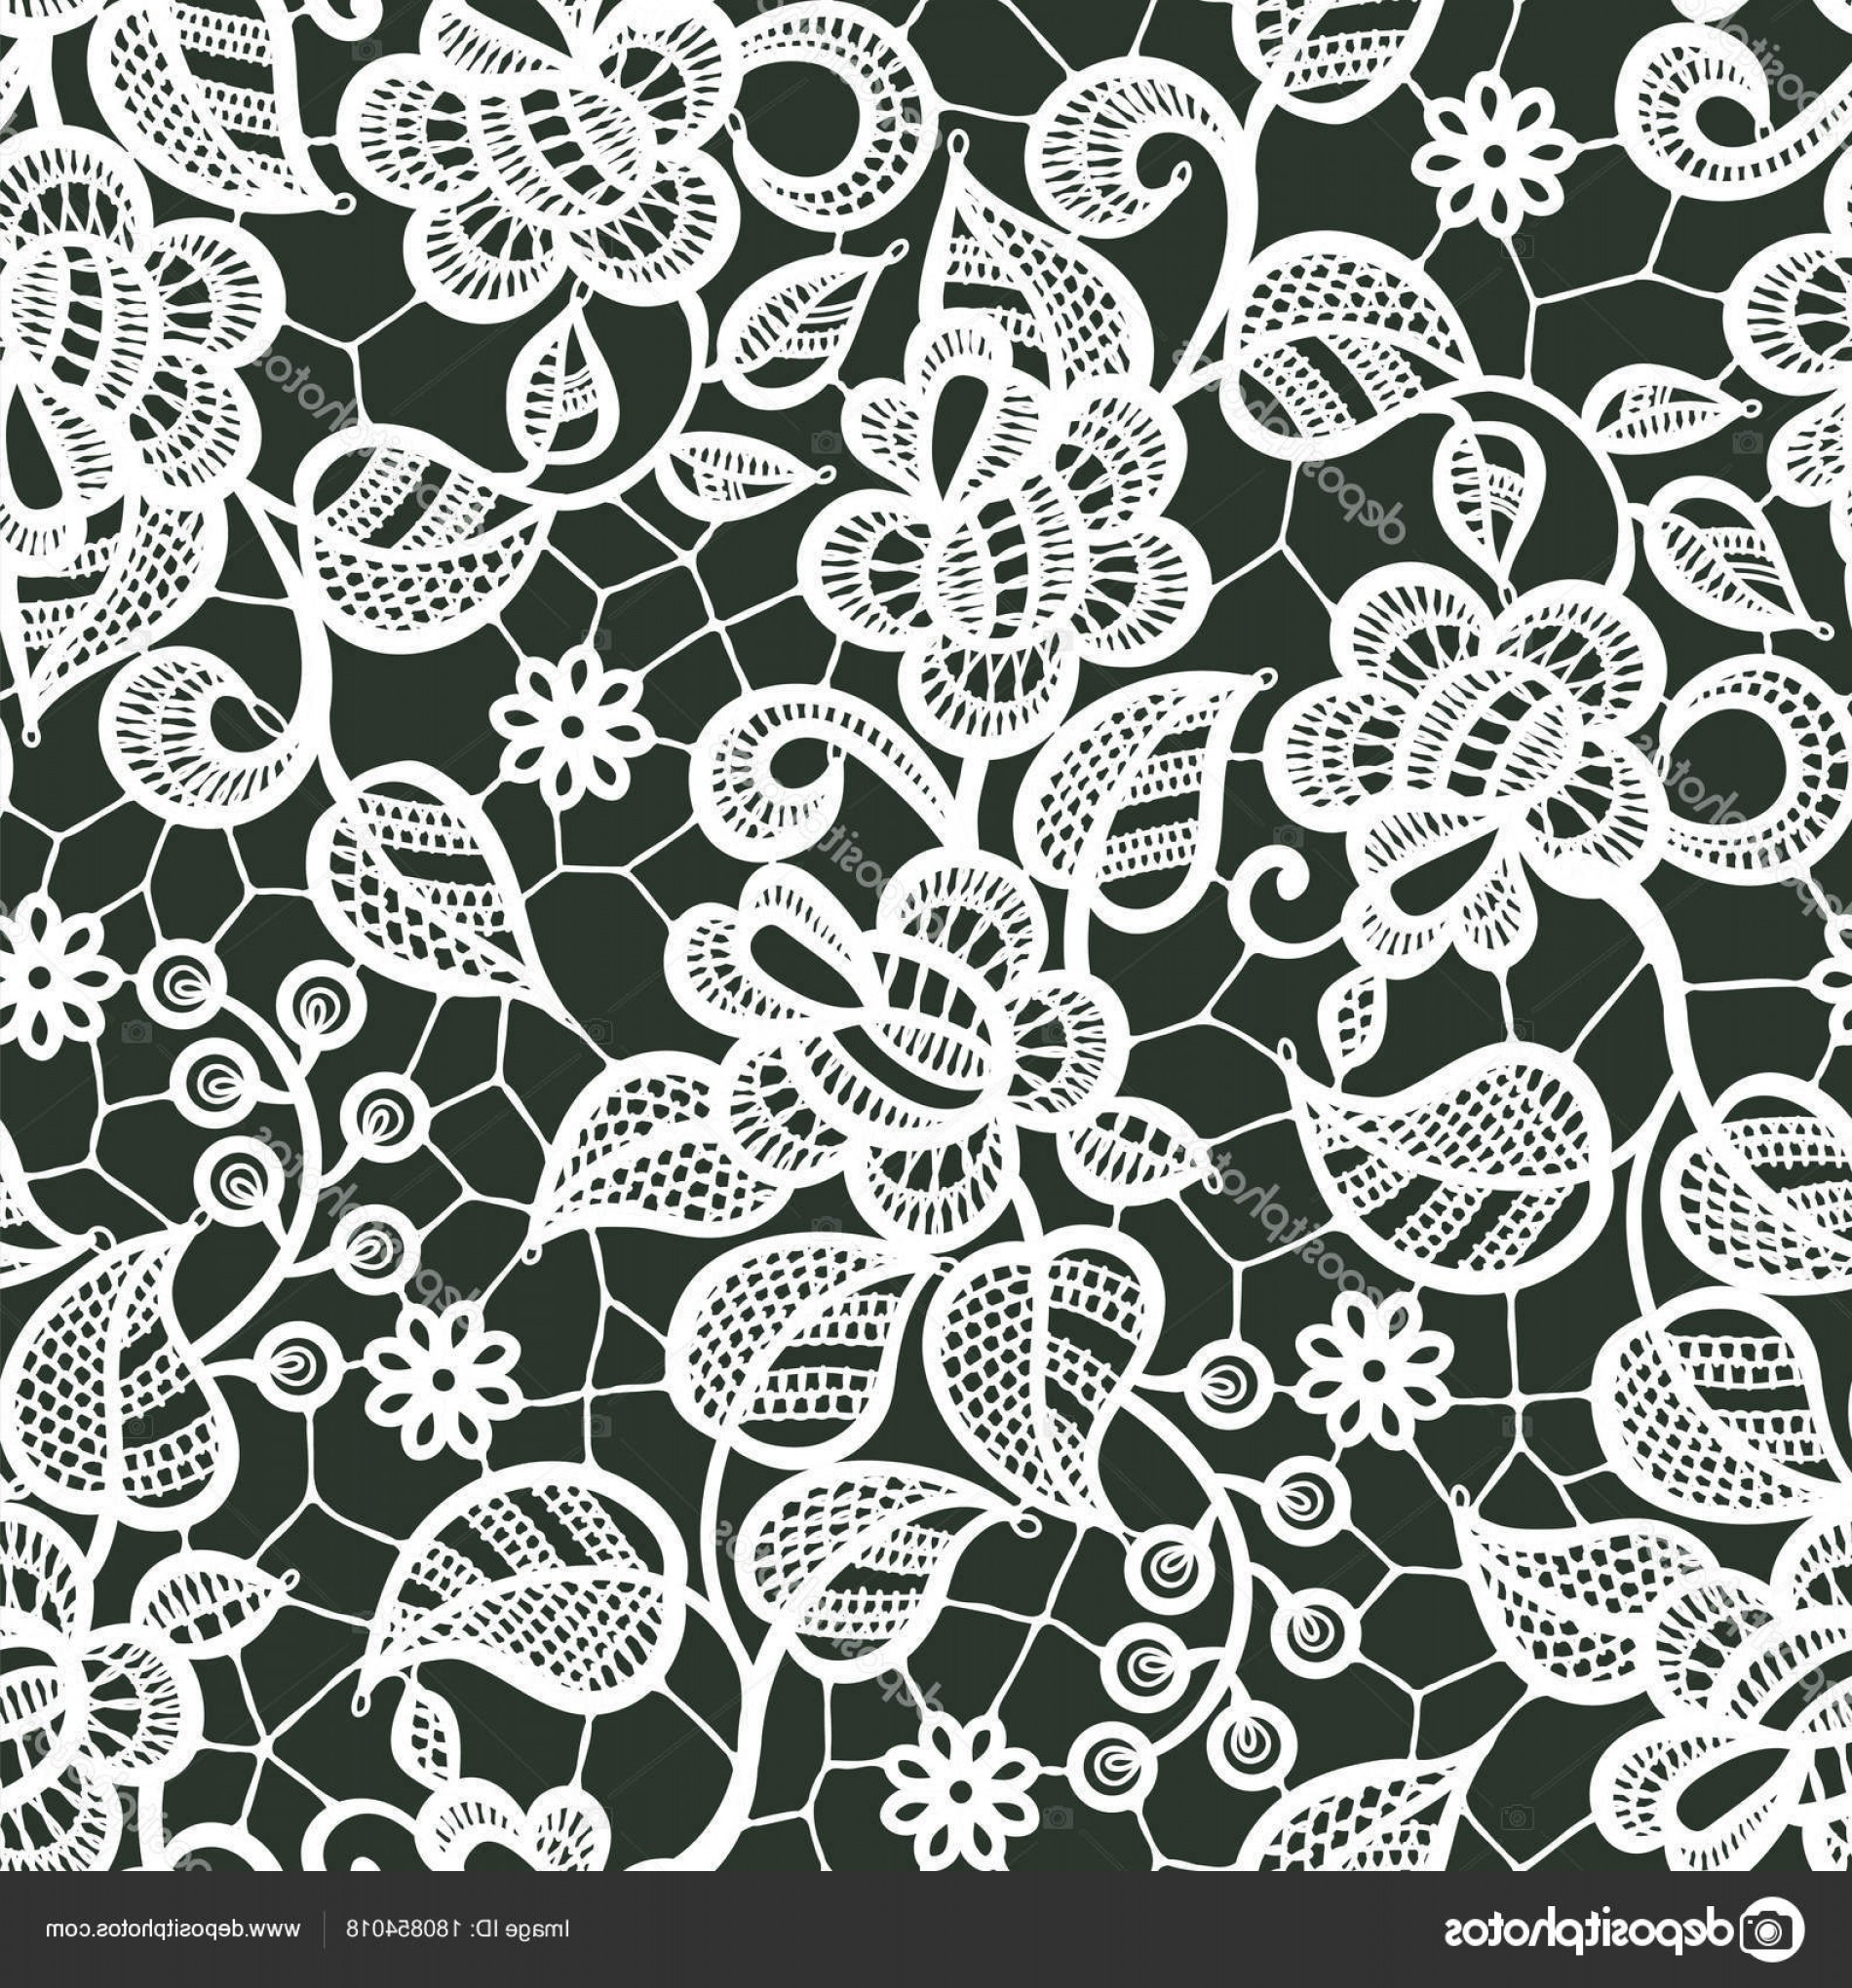 White Lace Vector: Stock Illustration White Lace Vector Seamless Pattern